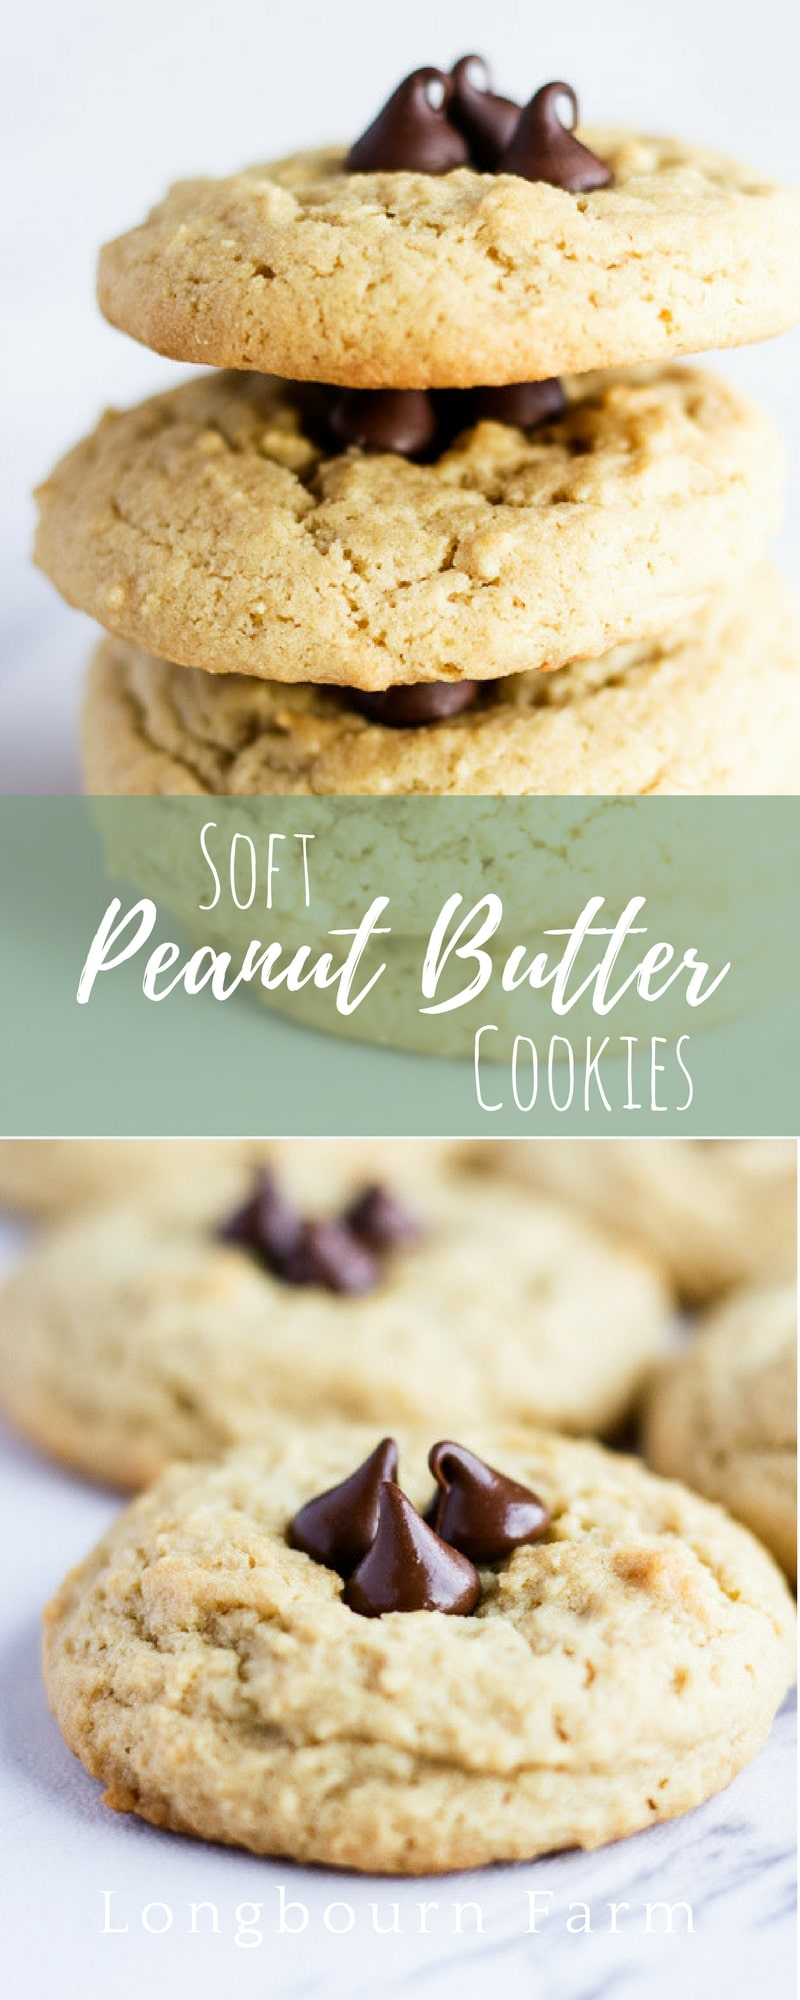 These soft peanut butter cookies are easy to make, soft, and delicious!! Every bite packed with peanut butter flavor, topped with chocolate chips to make them extra special.